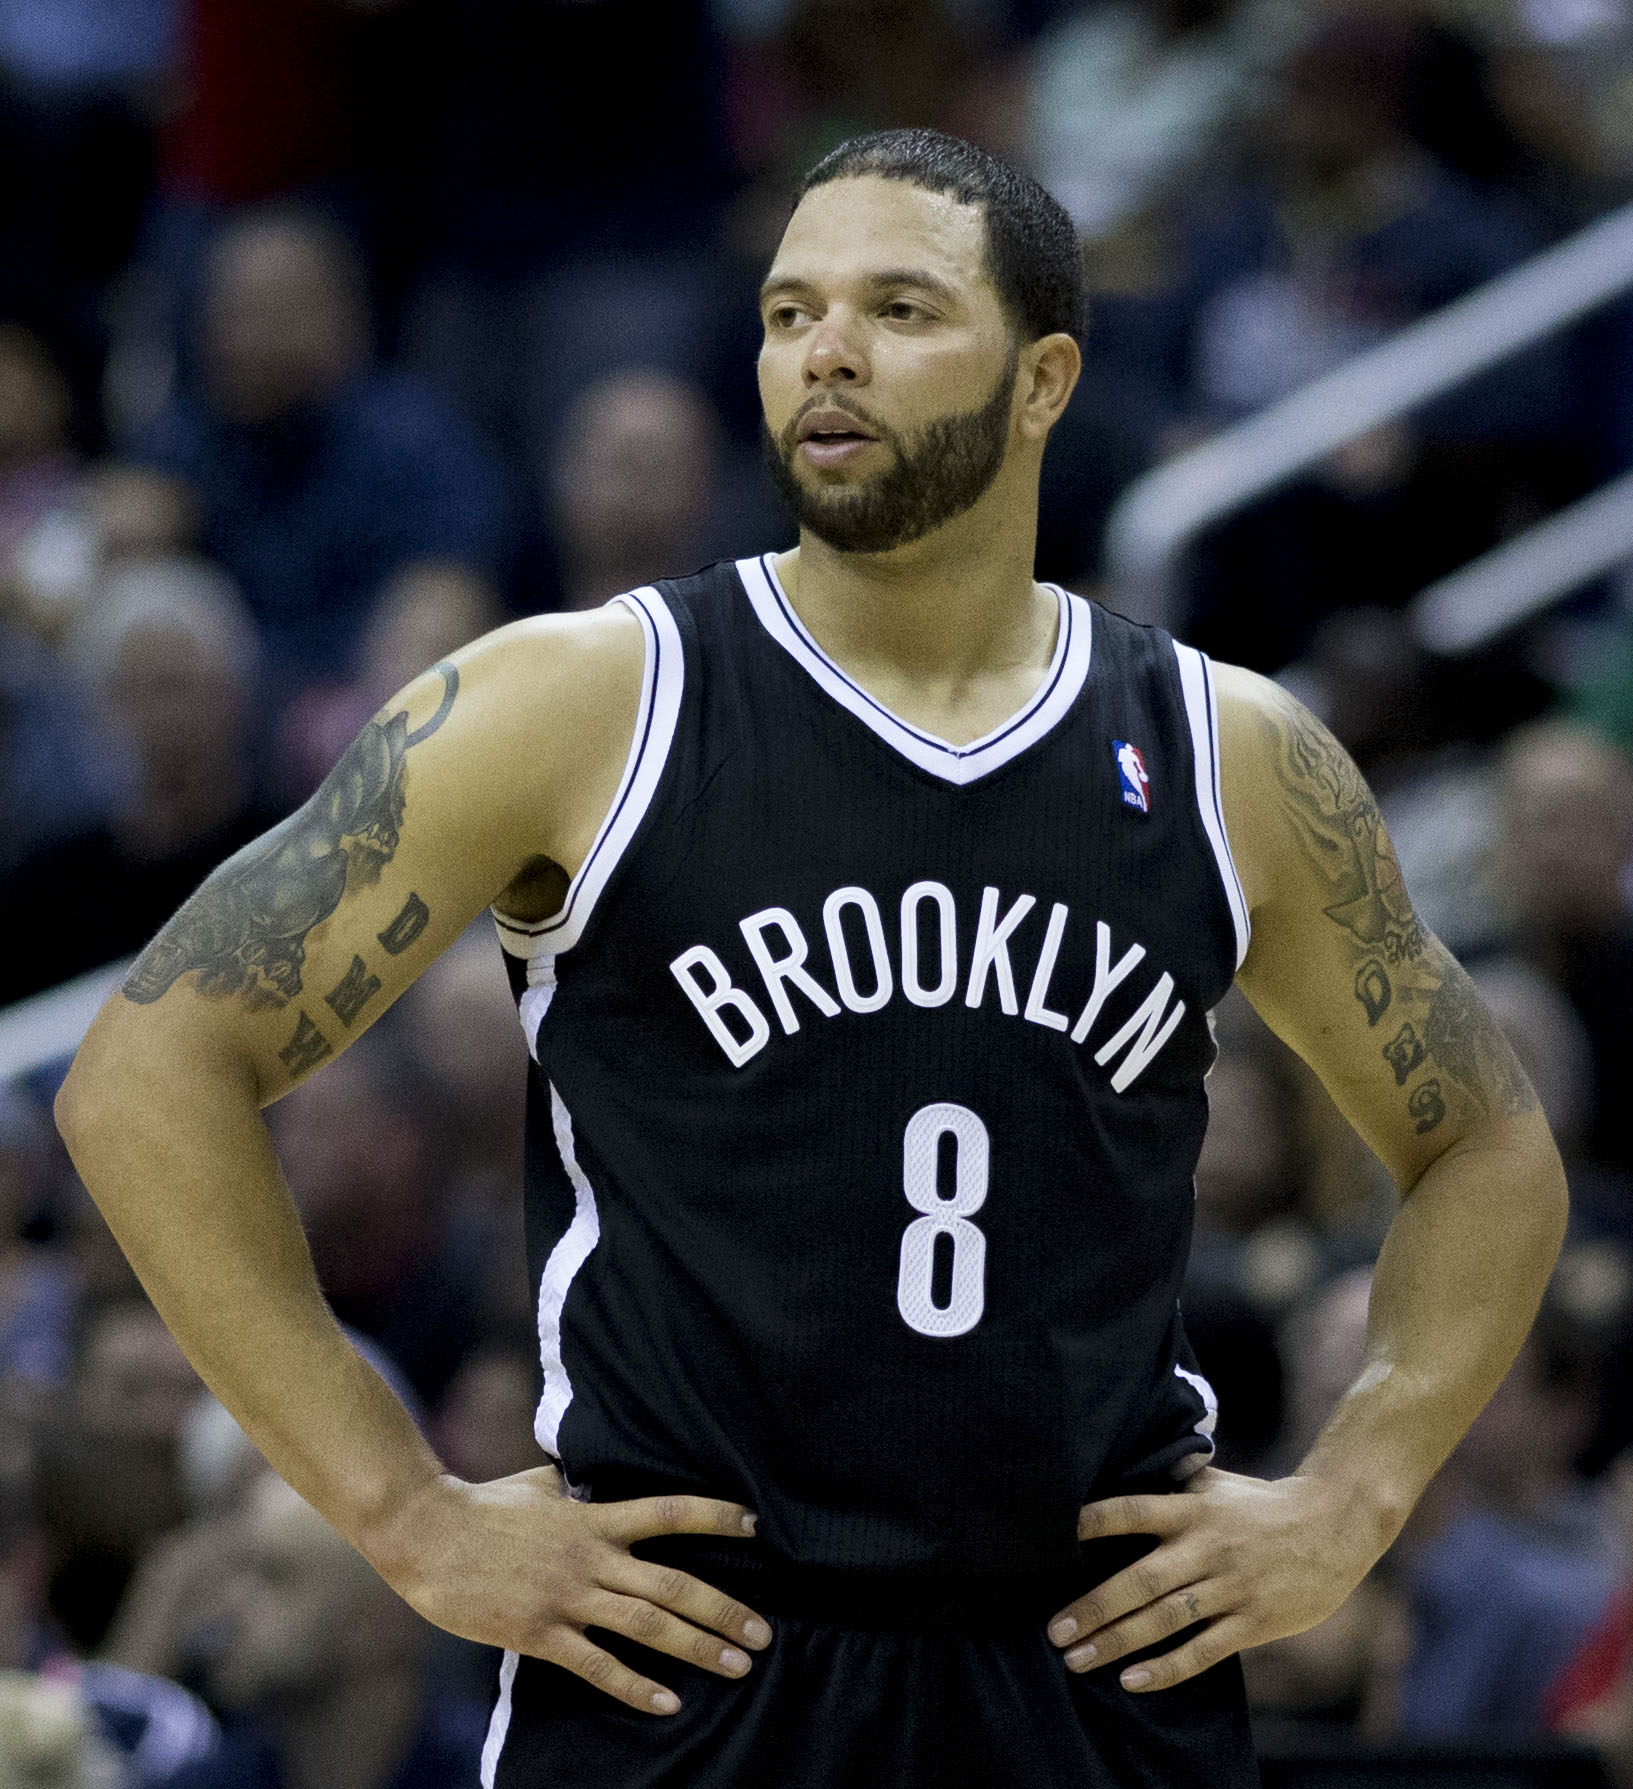 The 32-year old son of father (?) and mother(?), 191 cm tall Deron Williams in 2017 photo